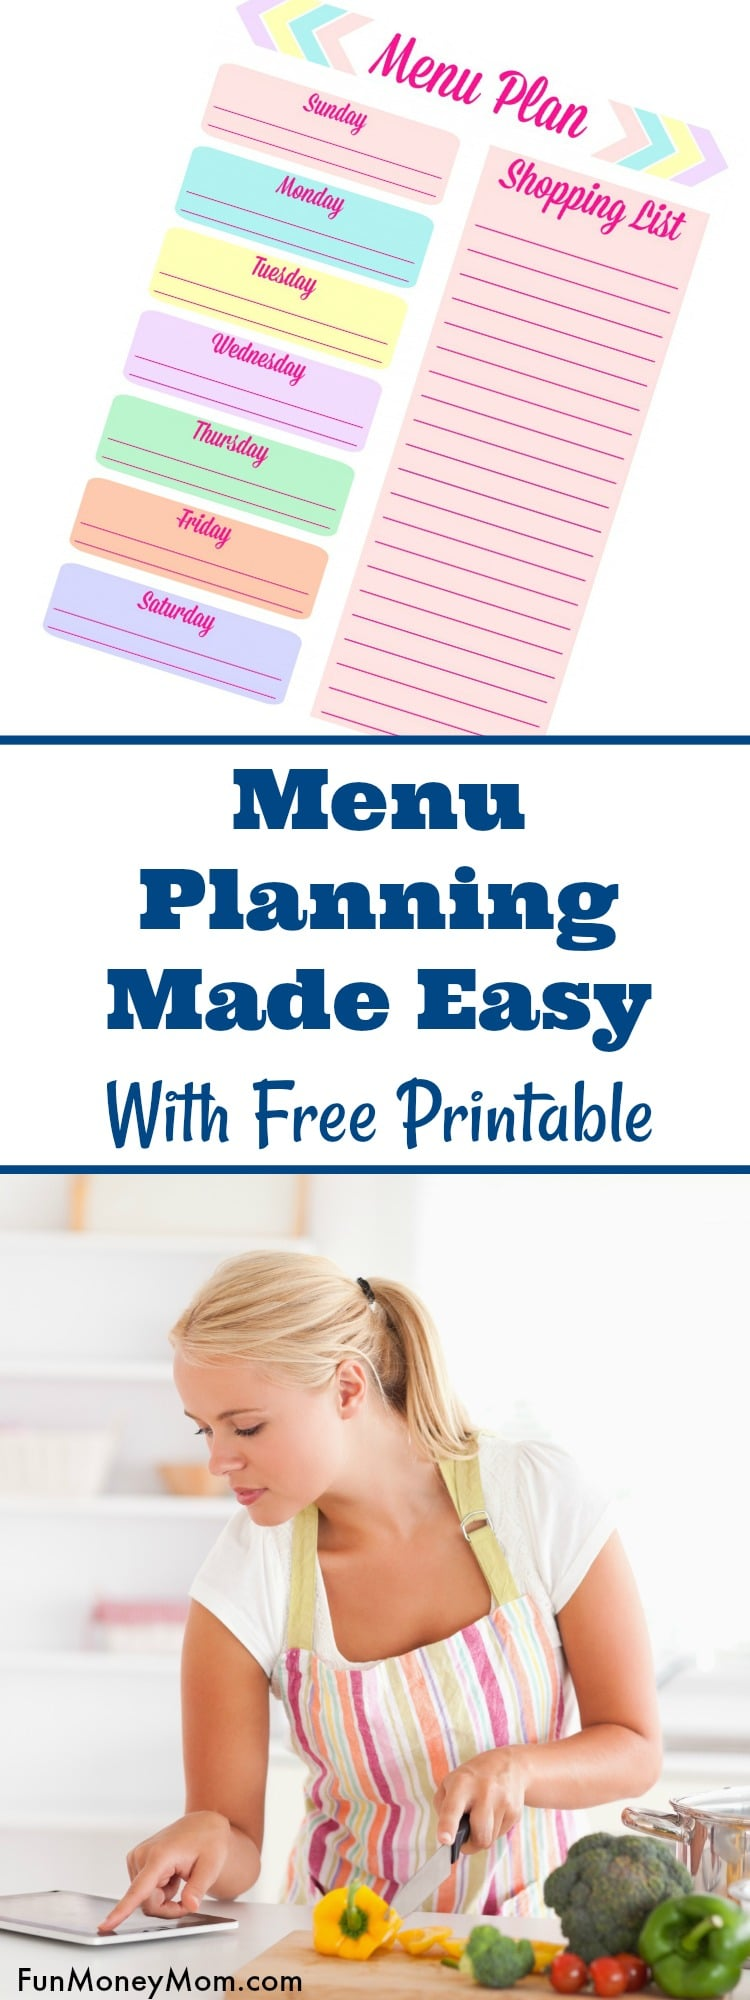 Menu planning can be easy if you do it right! Check out these great meal planning tips, download the free menu planning printable and you won't believe how easy dinner can be!